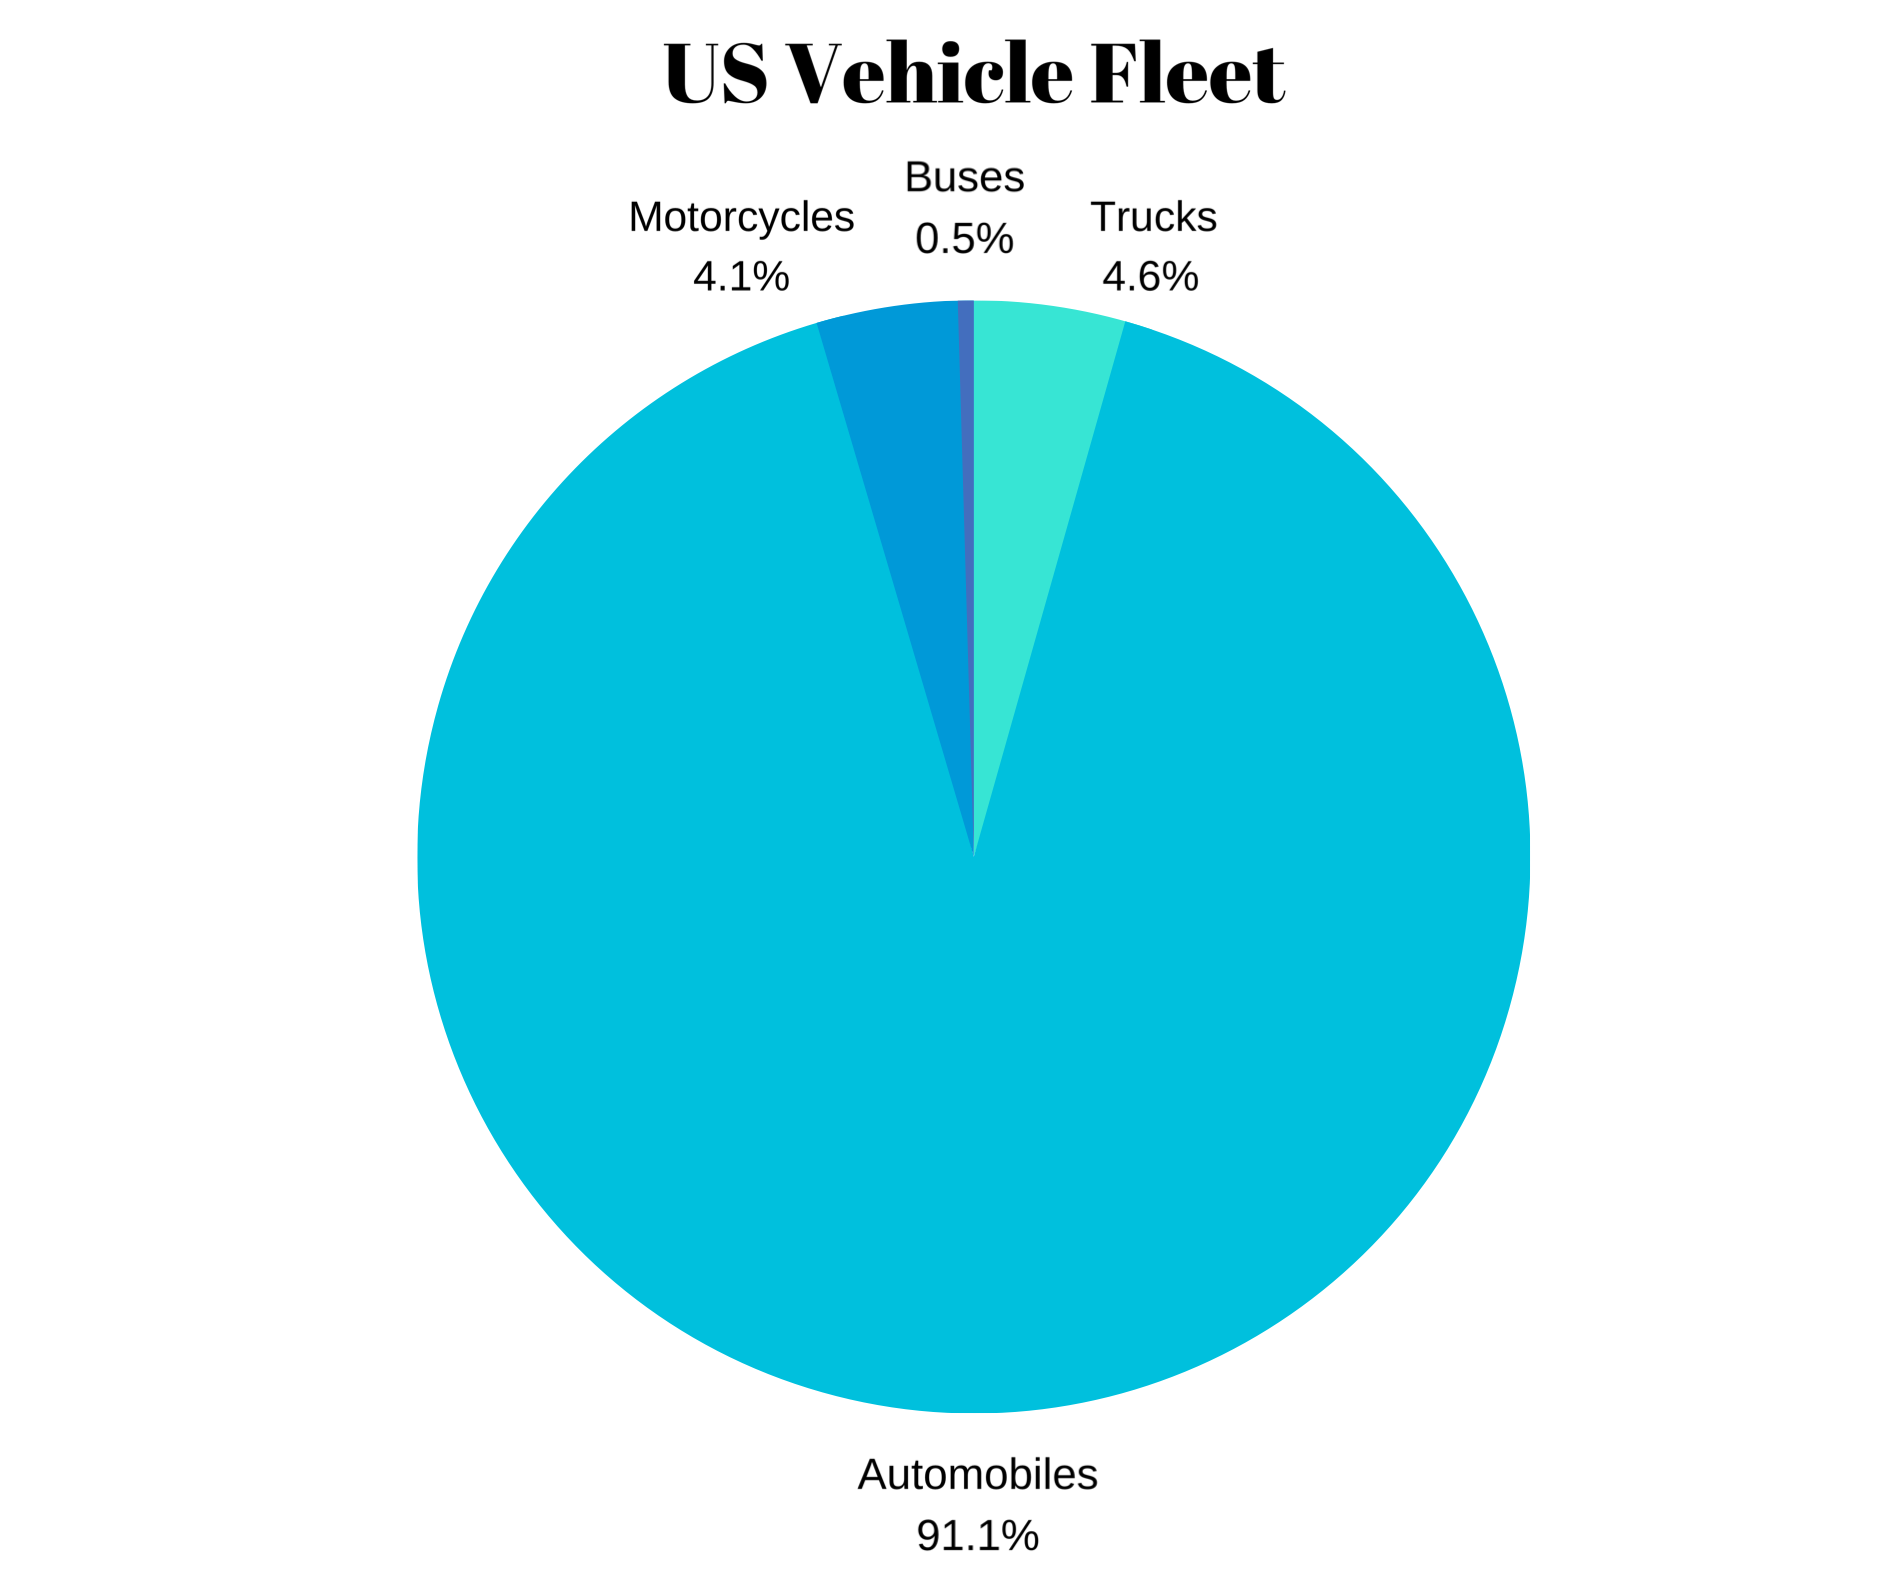 A pie chart showing percentages of types of vehicles on the road